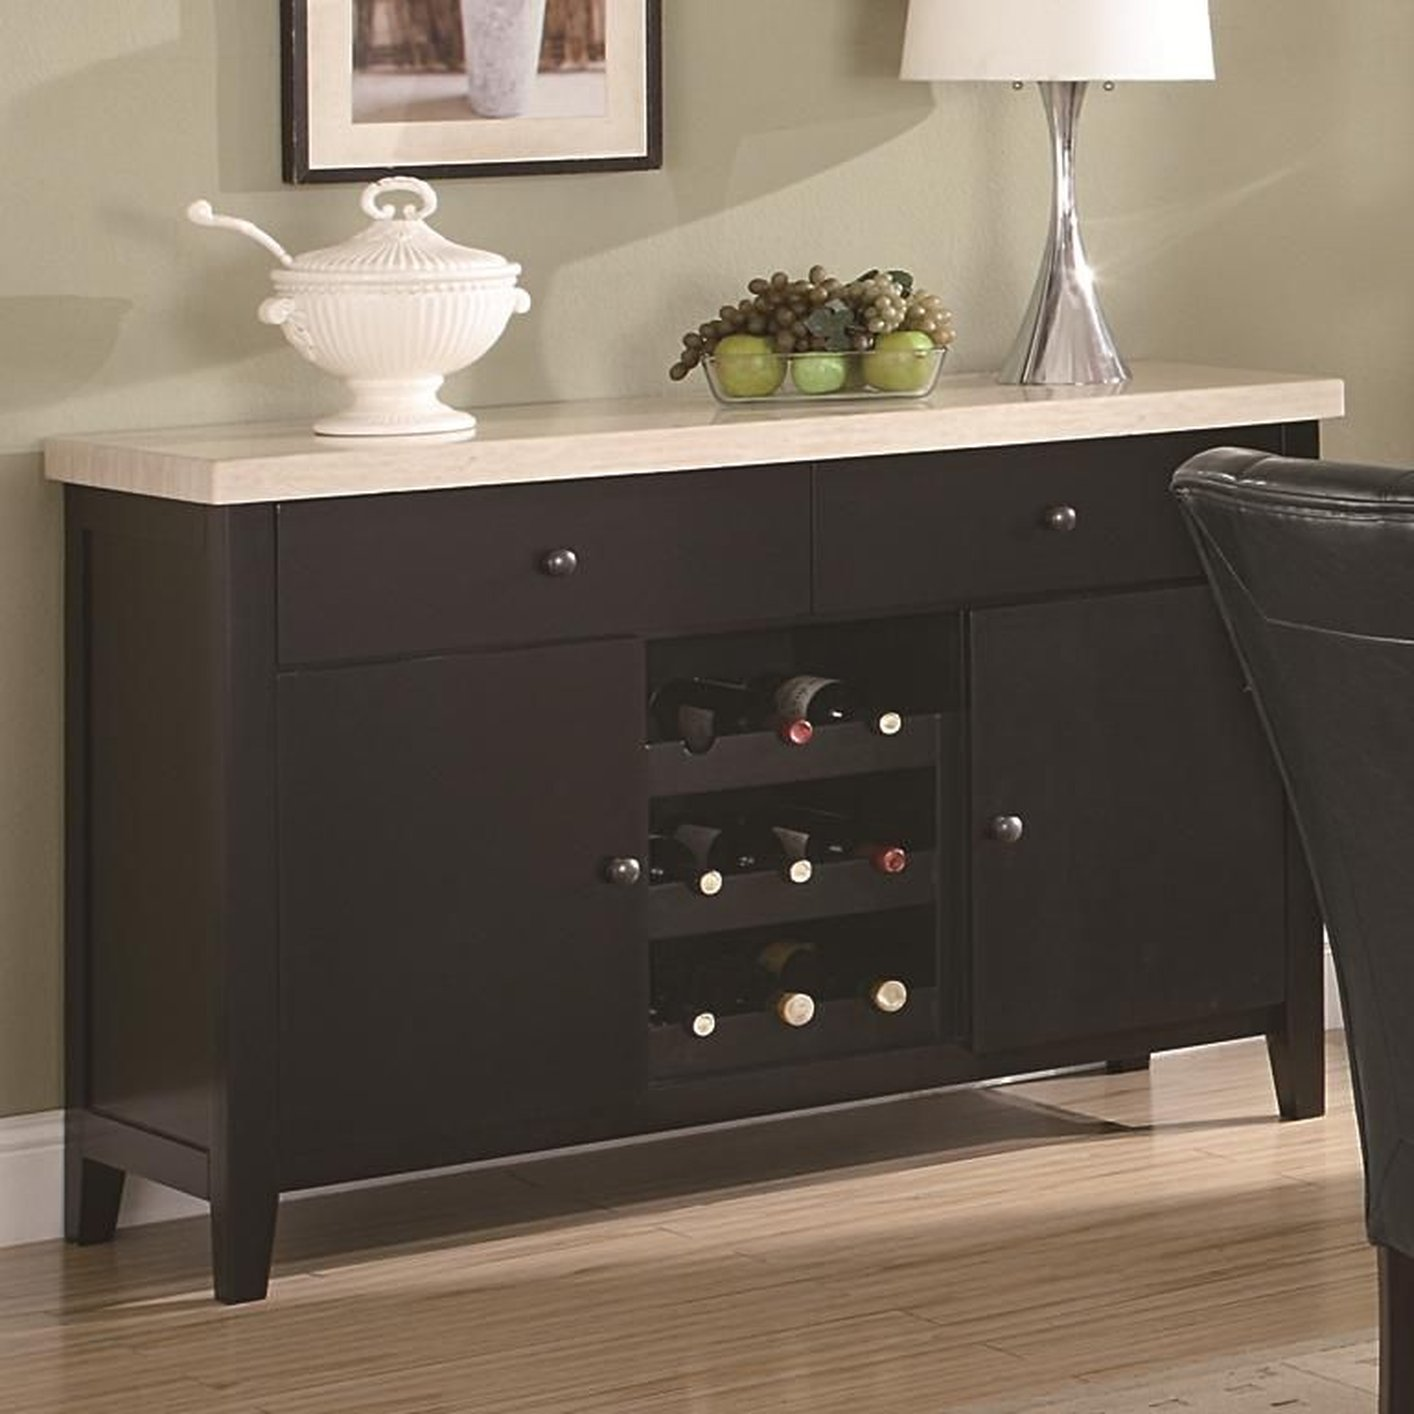 Dining room cabinet with wine rack